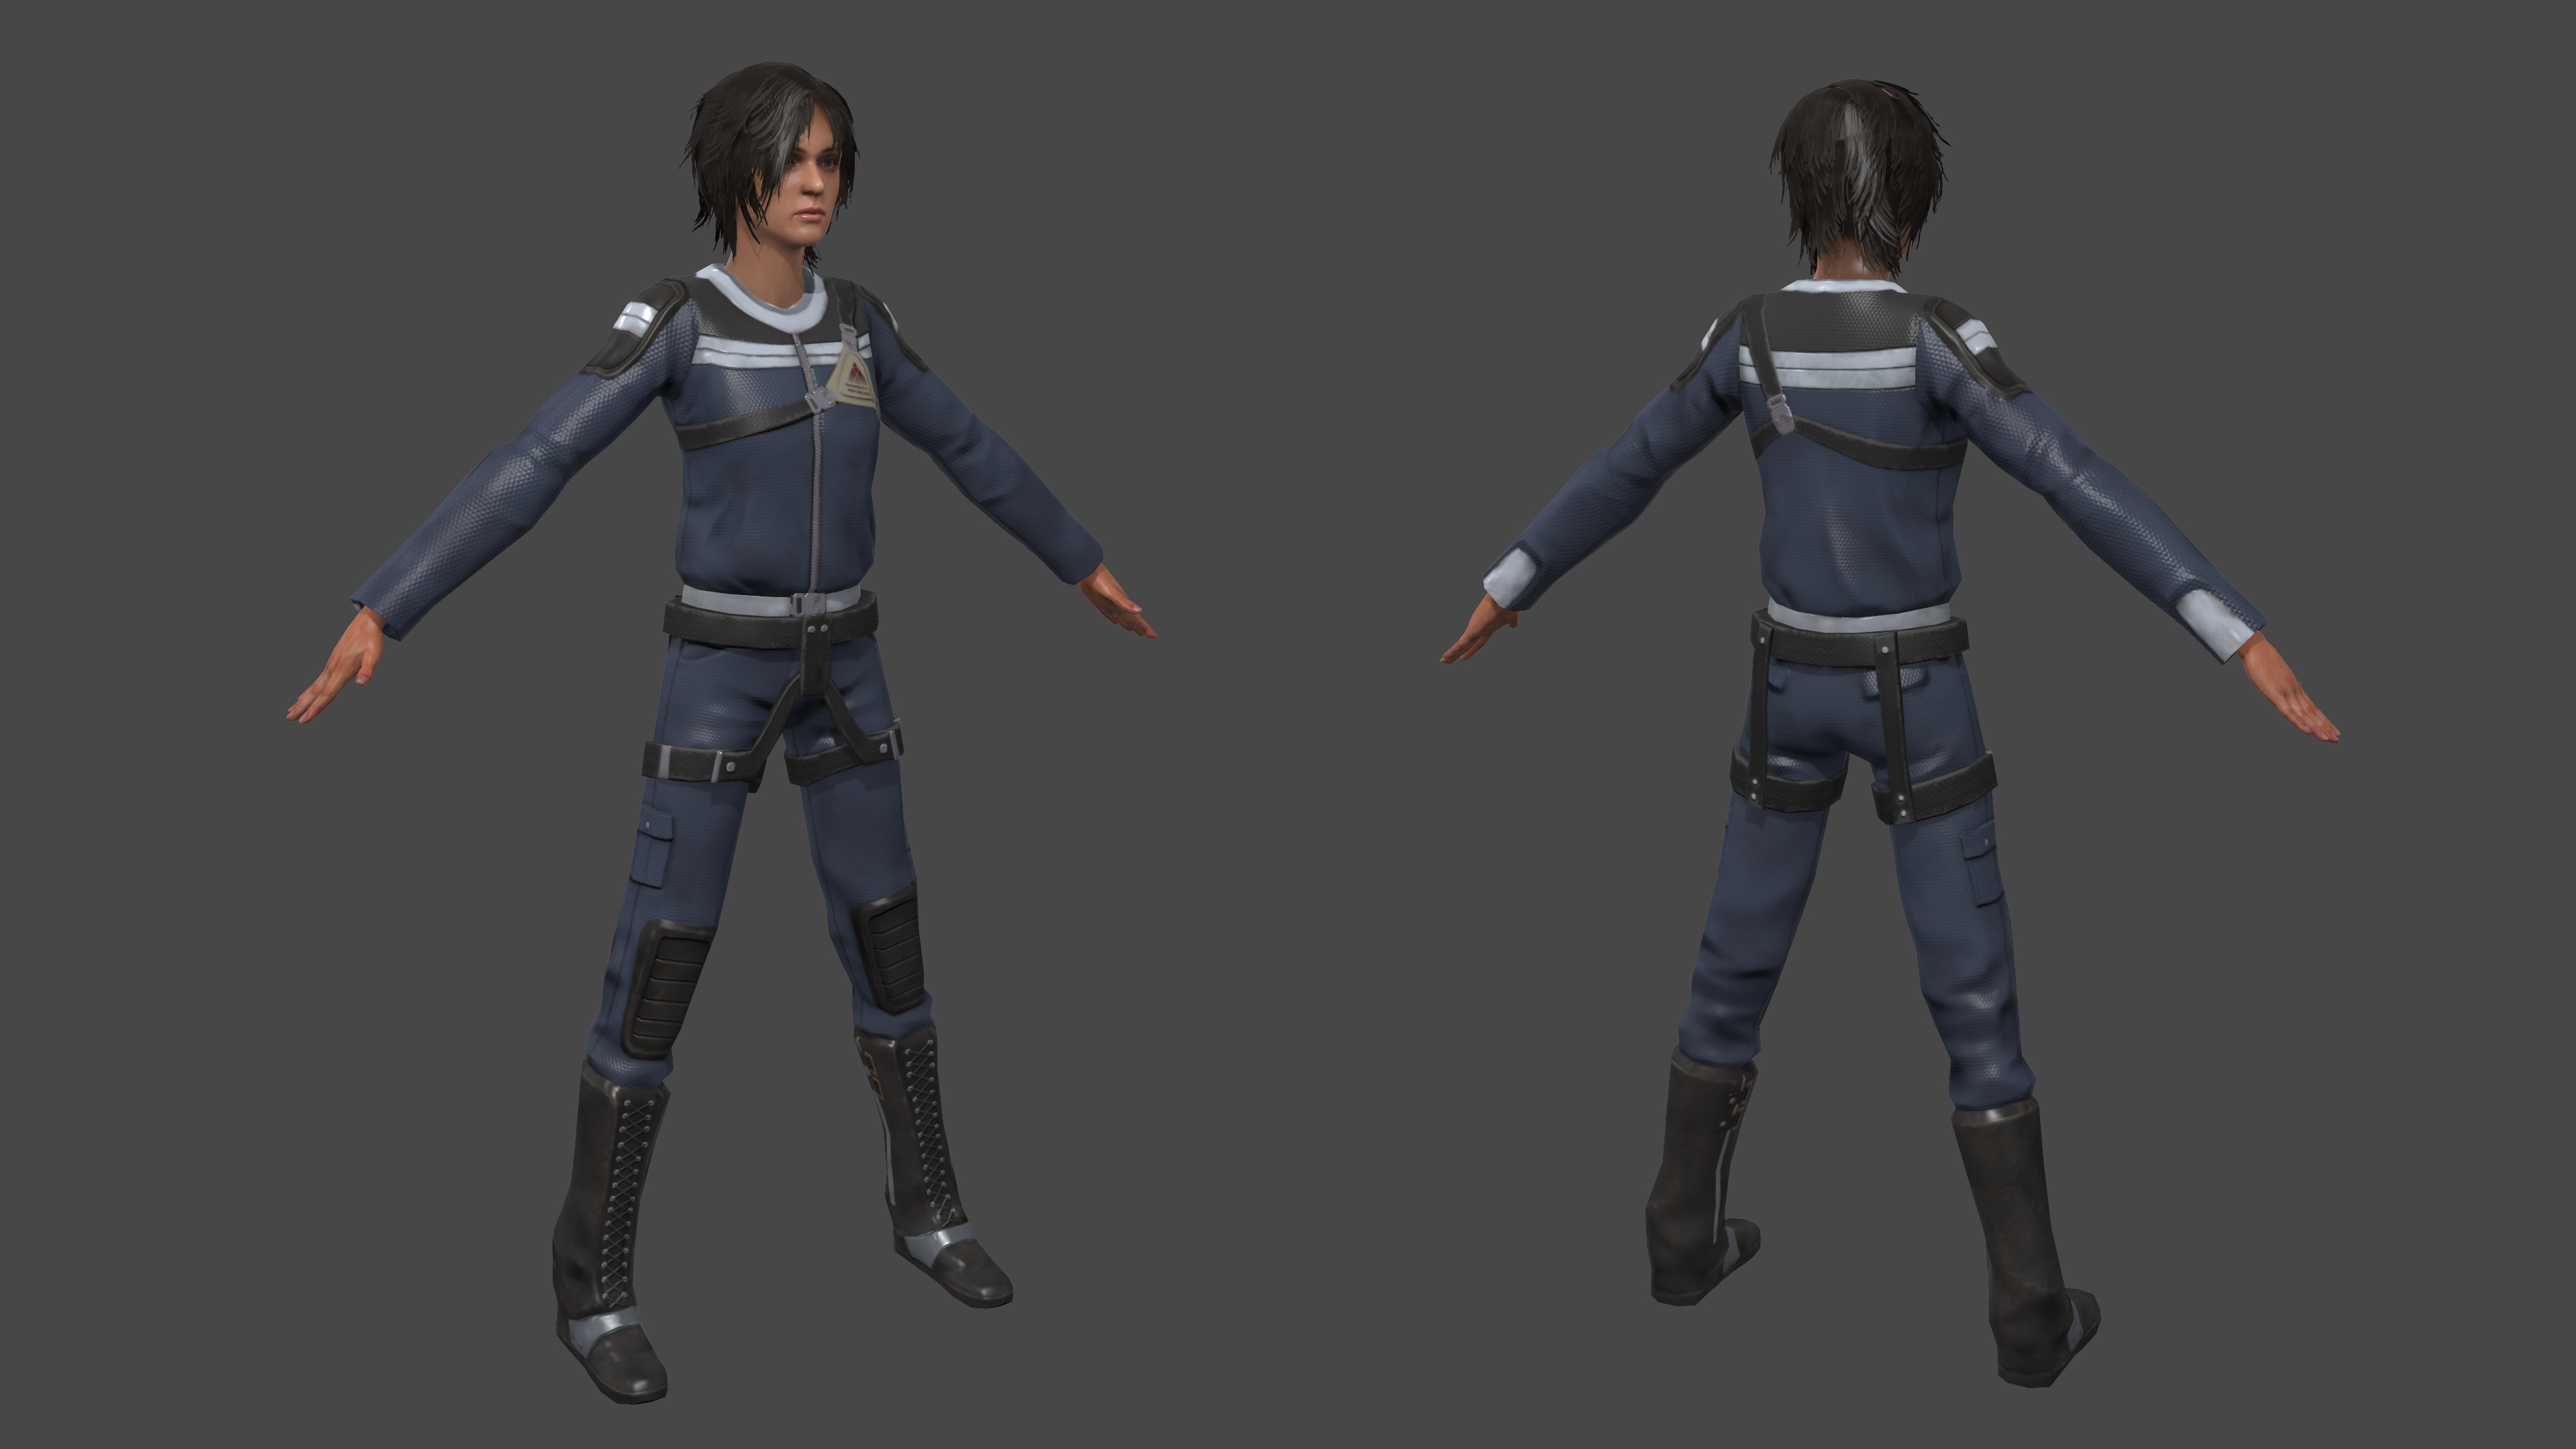 Final model in Marmoset.  I only worked on the costume and hands.